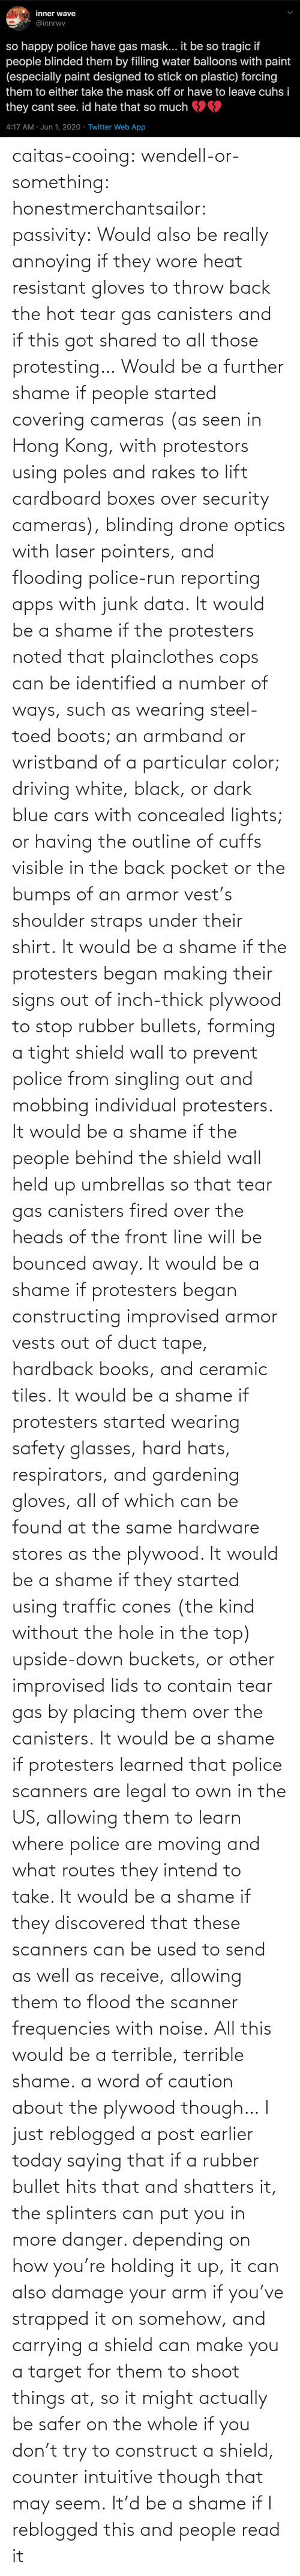 youtube.com: caitas-cooing:  wendell-or-something: honestmerchantsailor:  passivity: Would also be really annoying if they wore heat resistant gloves to throw back the hot tear gas canisters and if this got shared to all those protesting… Would be a further shame if people started covering cameras (as seen in Hong Kong, with protestors using poles and rakes to lift cardboard boxes over security cameras), blinding drone optics with laser pointers, and flooding police-run reporting apps with junk data. It would be a shame if the protesters noted that plainclothes cops can be identified a number of ways, such as wearing steel-toed boots; an armband or wristband of a particular color; driving white, black, or dark blue cars with concealed lights; or having the outline of cuffs visible in the back pocket or the bumps of an armor vest's shoulder straps under their shirt. It would be a shame if the protesters began making their signs out of inch-thick plywood to stop rubber bullets, forming a tight shield wall to prevent police from singling out and mobbing individual protesters. It would be a shame if the people behind the shield wall held up umbrellas so that tear gas canisters fired over the heads of the front line will be bounced away. It would be a shame if protesters began constructing improvised armor vests out of duct tape, hardback books, and ceramic tiles. It would be a shame if protesters started wearing safety glasses, hard hats, respirators, and gardening gloves, all of which can be found at the same hardware stores as the plywood. It would be a shame if they started using traffic cones (the kind without the hole in the top) upside-down buckets, or other improvised lids to contain tear gas by placing them over the canisters. It would be a shame if protesters learned that police scanners are legal to own in the US, allowing them to learn where police are moving and what routes they intend to take. It would be a shame if they discovered that these scanners can be used to send as well as receive, allowing them to flood the scanner frequencies with noise. All this would be a terrible, terrible shame.    a word of caution about the plywood though… I just reblogged a post earlier today saying that if a rubber bullet hits that and shatters it, the splinters can put you in more danger. depending on how you're holding it up, it can also damage your arm if you've strapped it on somehow, and carrying a shield can make you a target for them to shoot things at, so it might actually be safer on the whole if you don't try to construct a shield, counter intuitive though that may seem.    It'd be a shame if I reblogged this and people read it